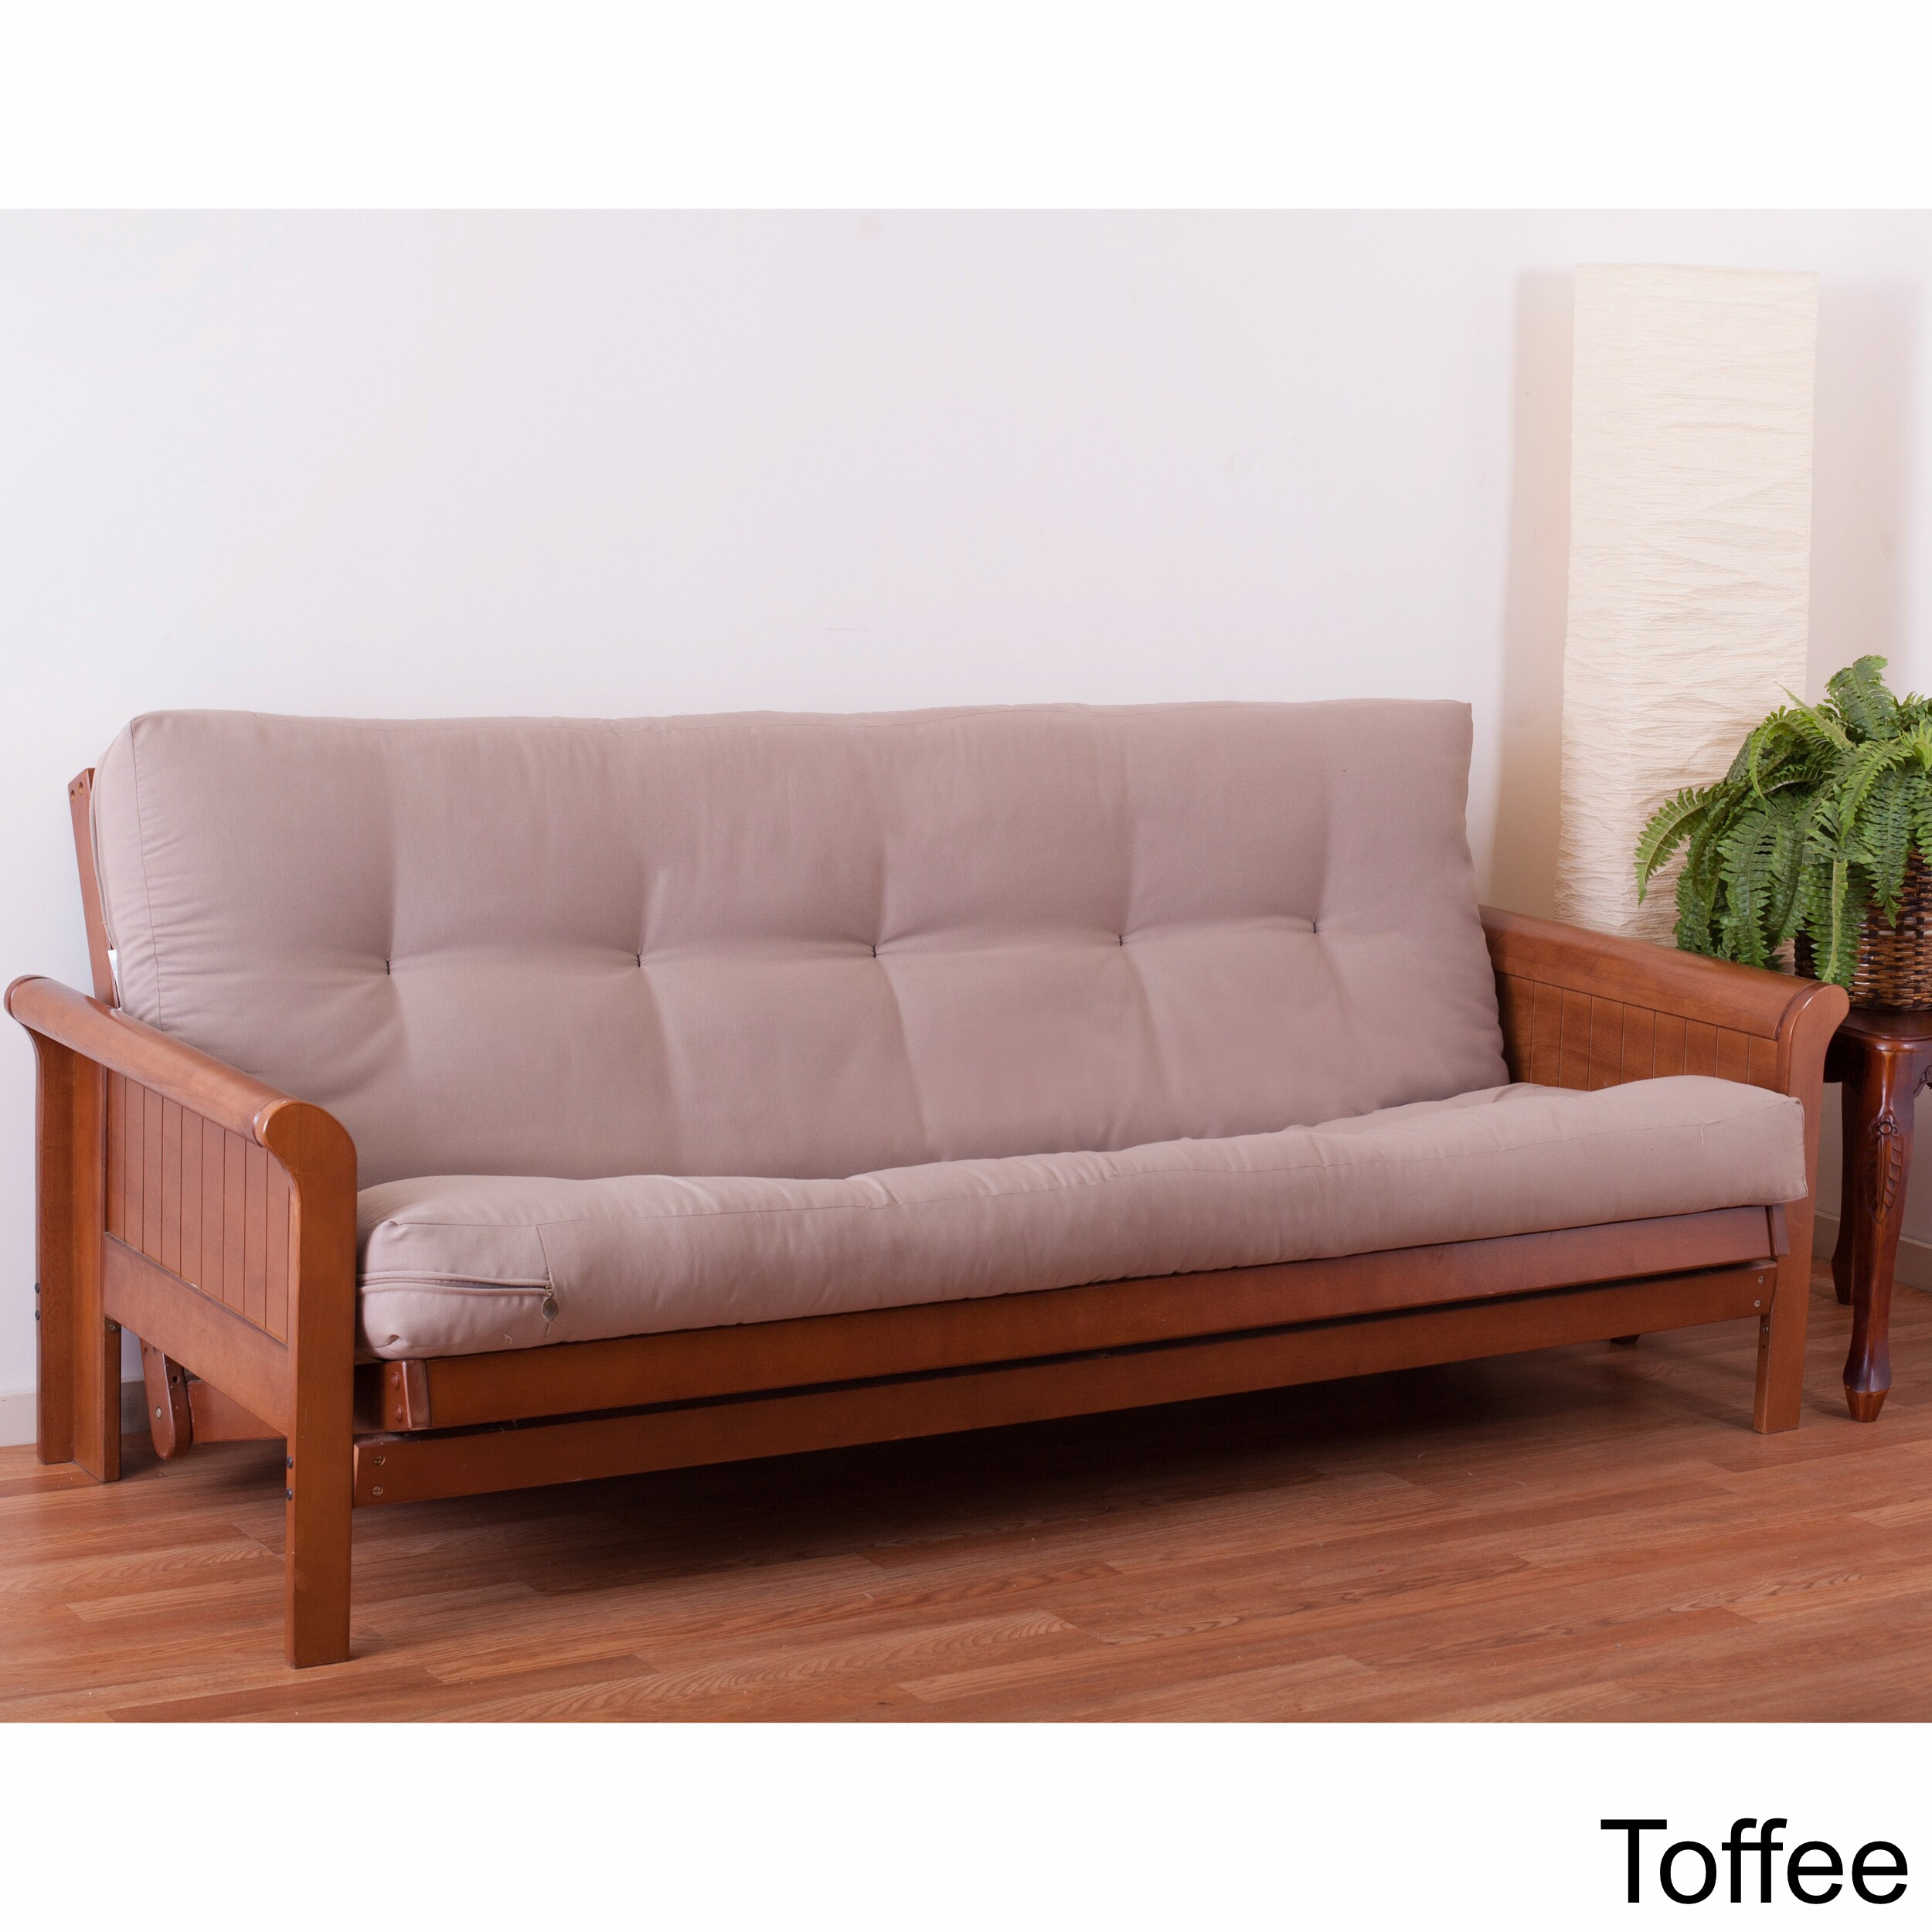 large mattress sofa bed full real frame futon size single metal pull fulton design sleeper out of with